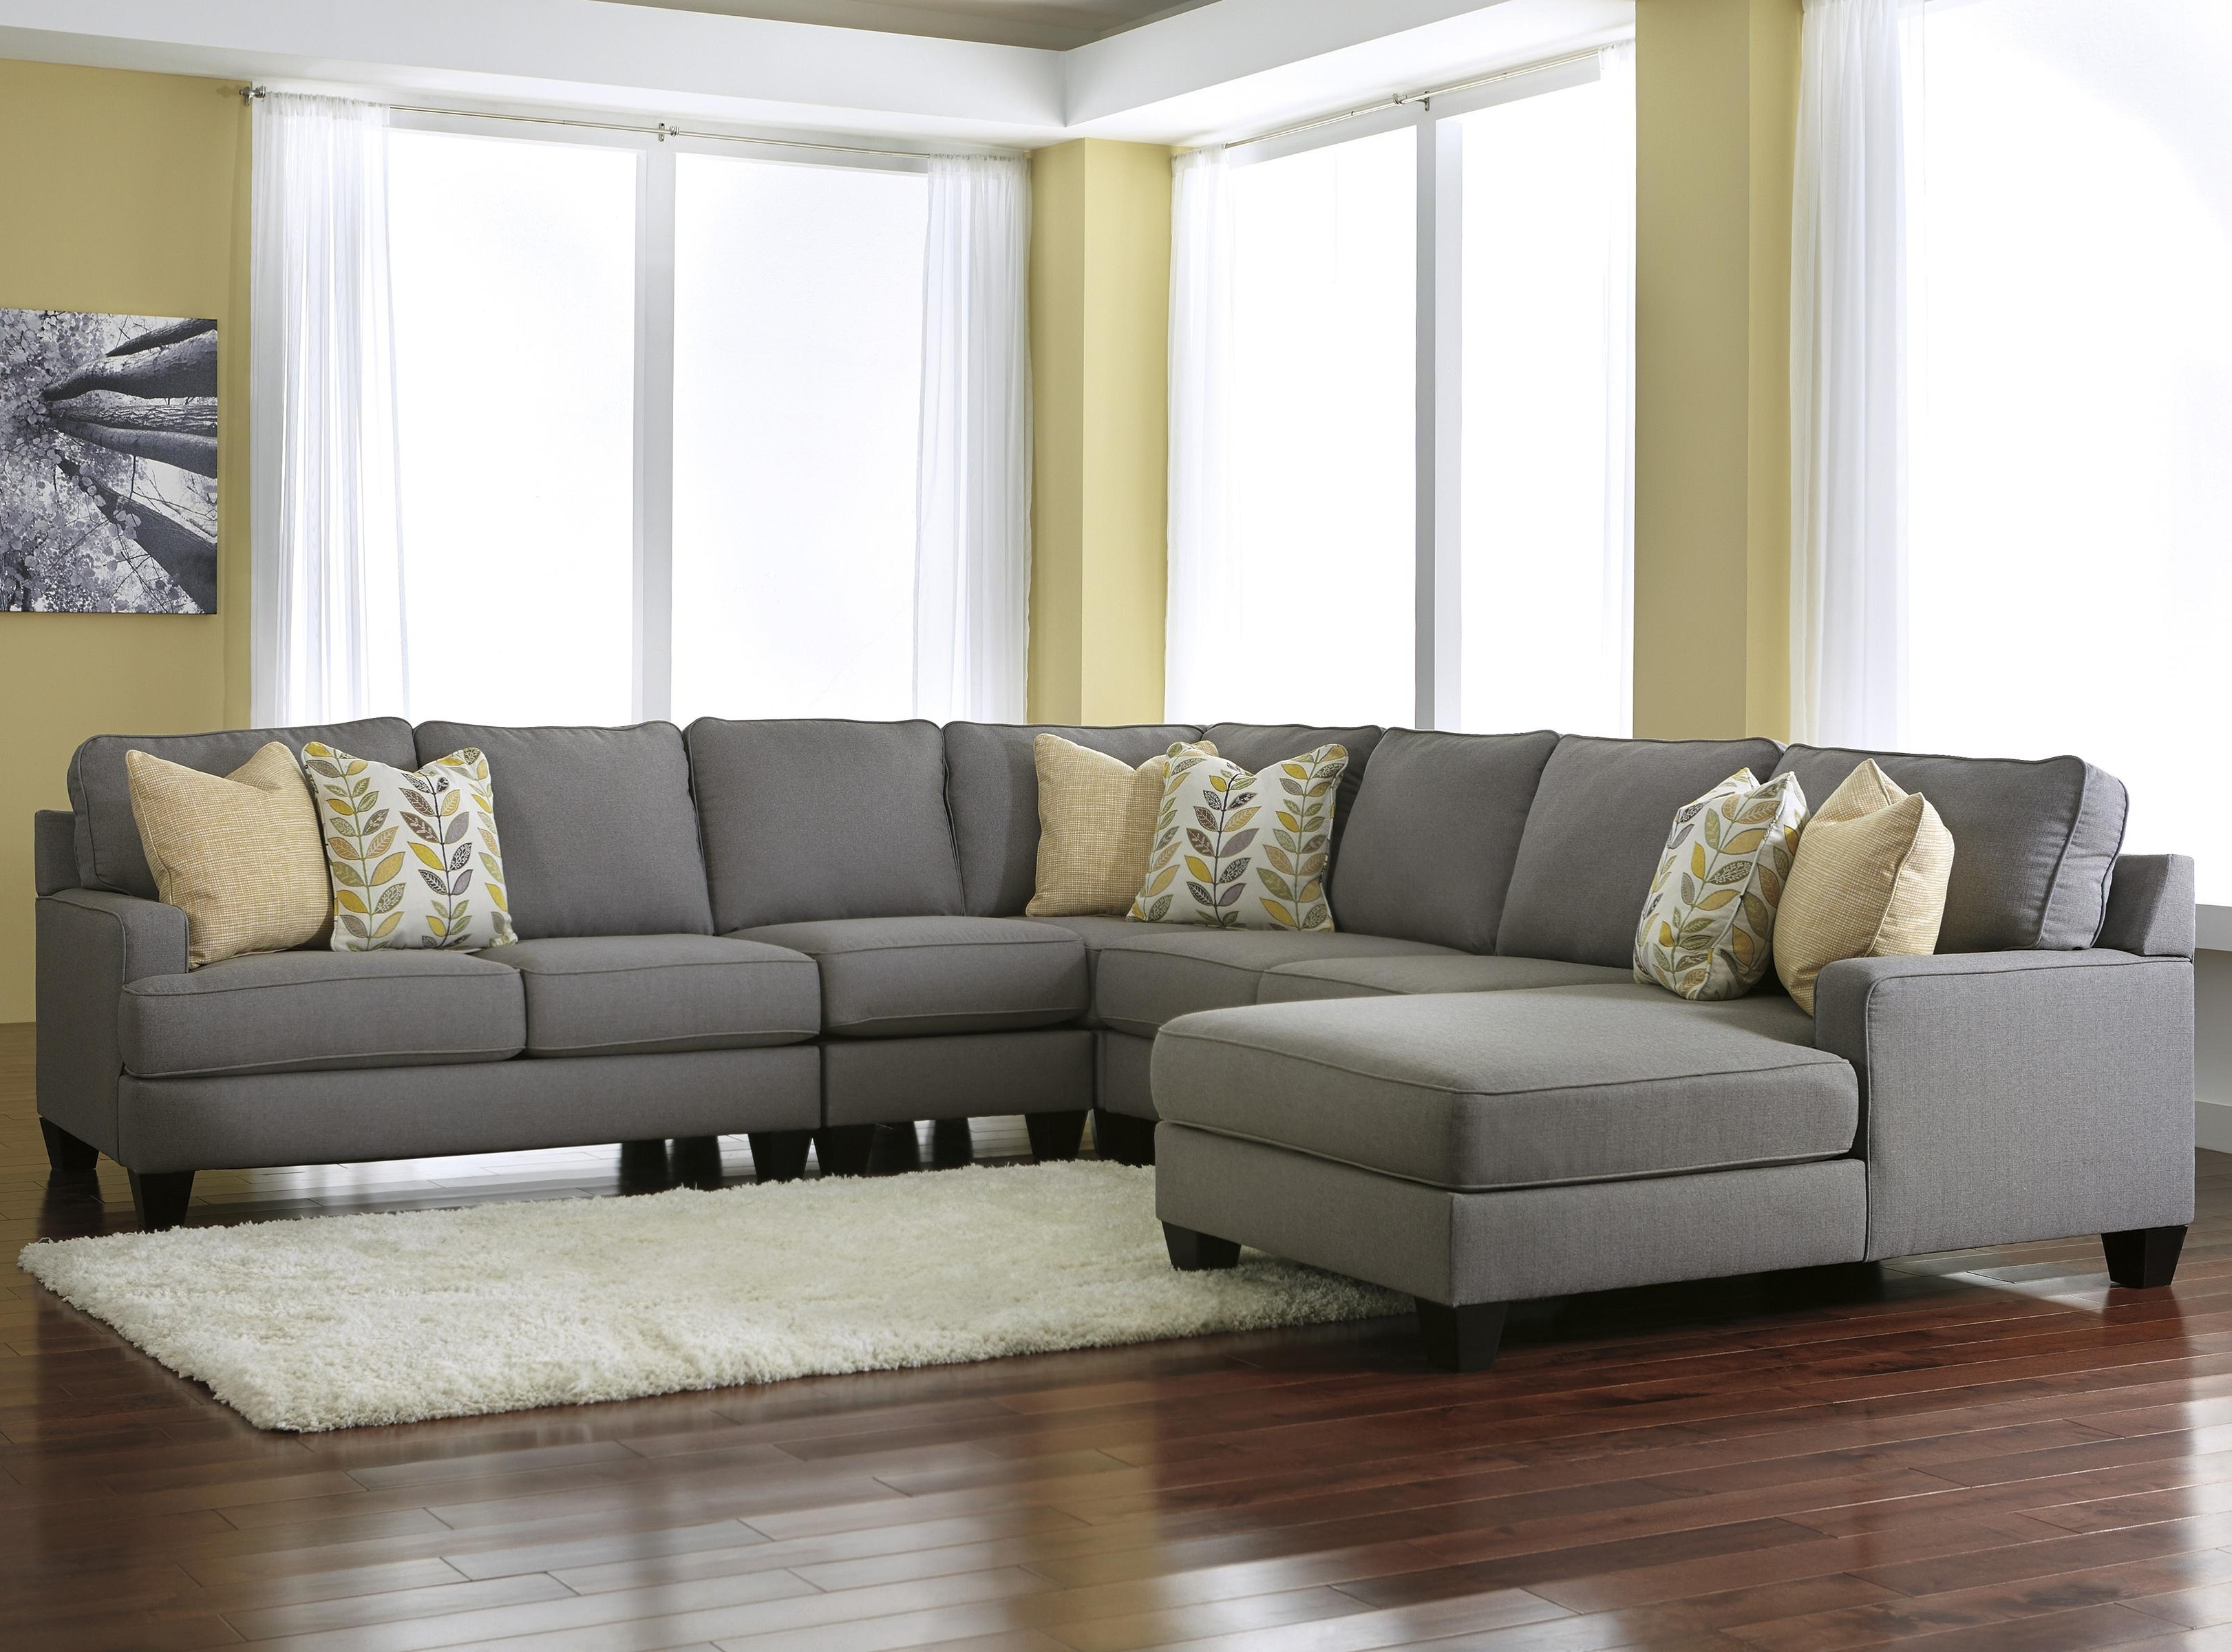 Popular Signature Designashley Chamberly – Alloy Modern 5 Piece With Hattiesburg Ms Sectional Sofas (View 11 of 20)